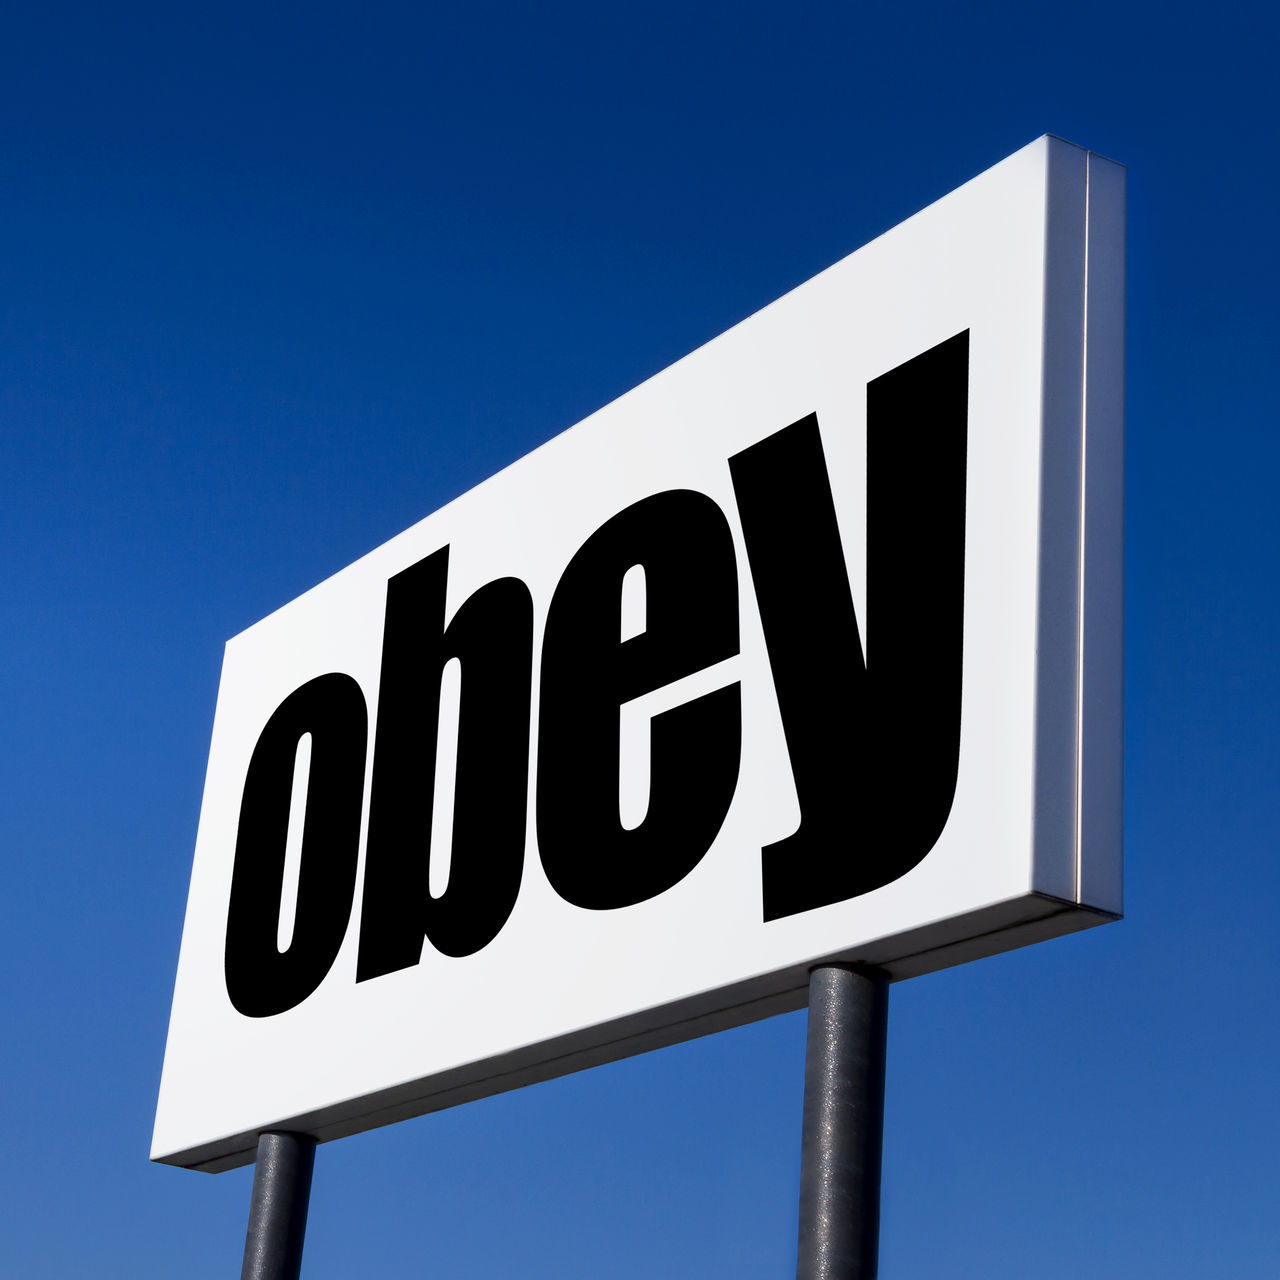 Horizontal billboard with the order to OBEY, against irreal blue sky. Abstract concept of consumerism, human mind control, power of corporations and lobbies. Ad Banking Business Command Conceptual Consumerism Control Enslavement Future Global Lobbies Lobby Message Obedience OBEY Order Power Sign Sky Stock Subliminal Text White Word